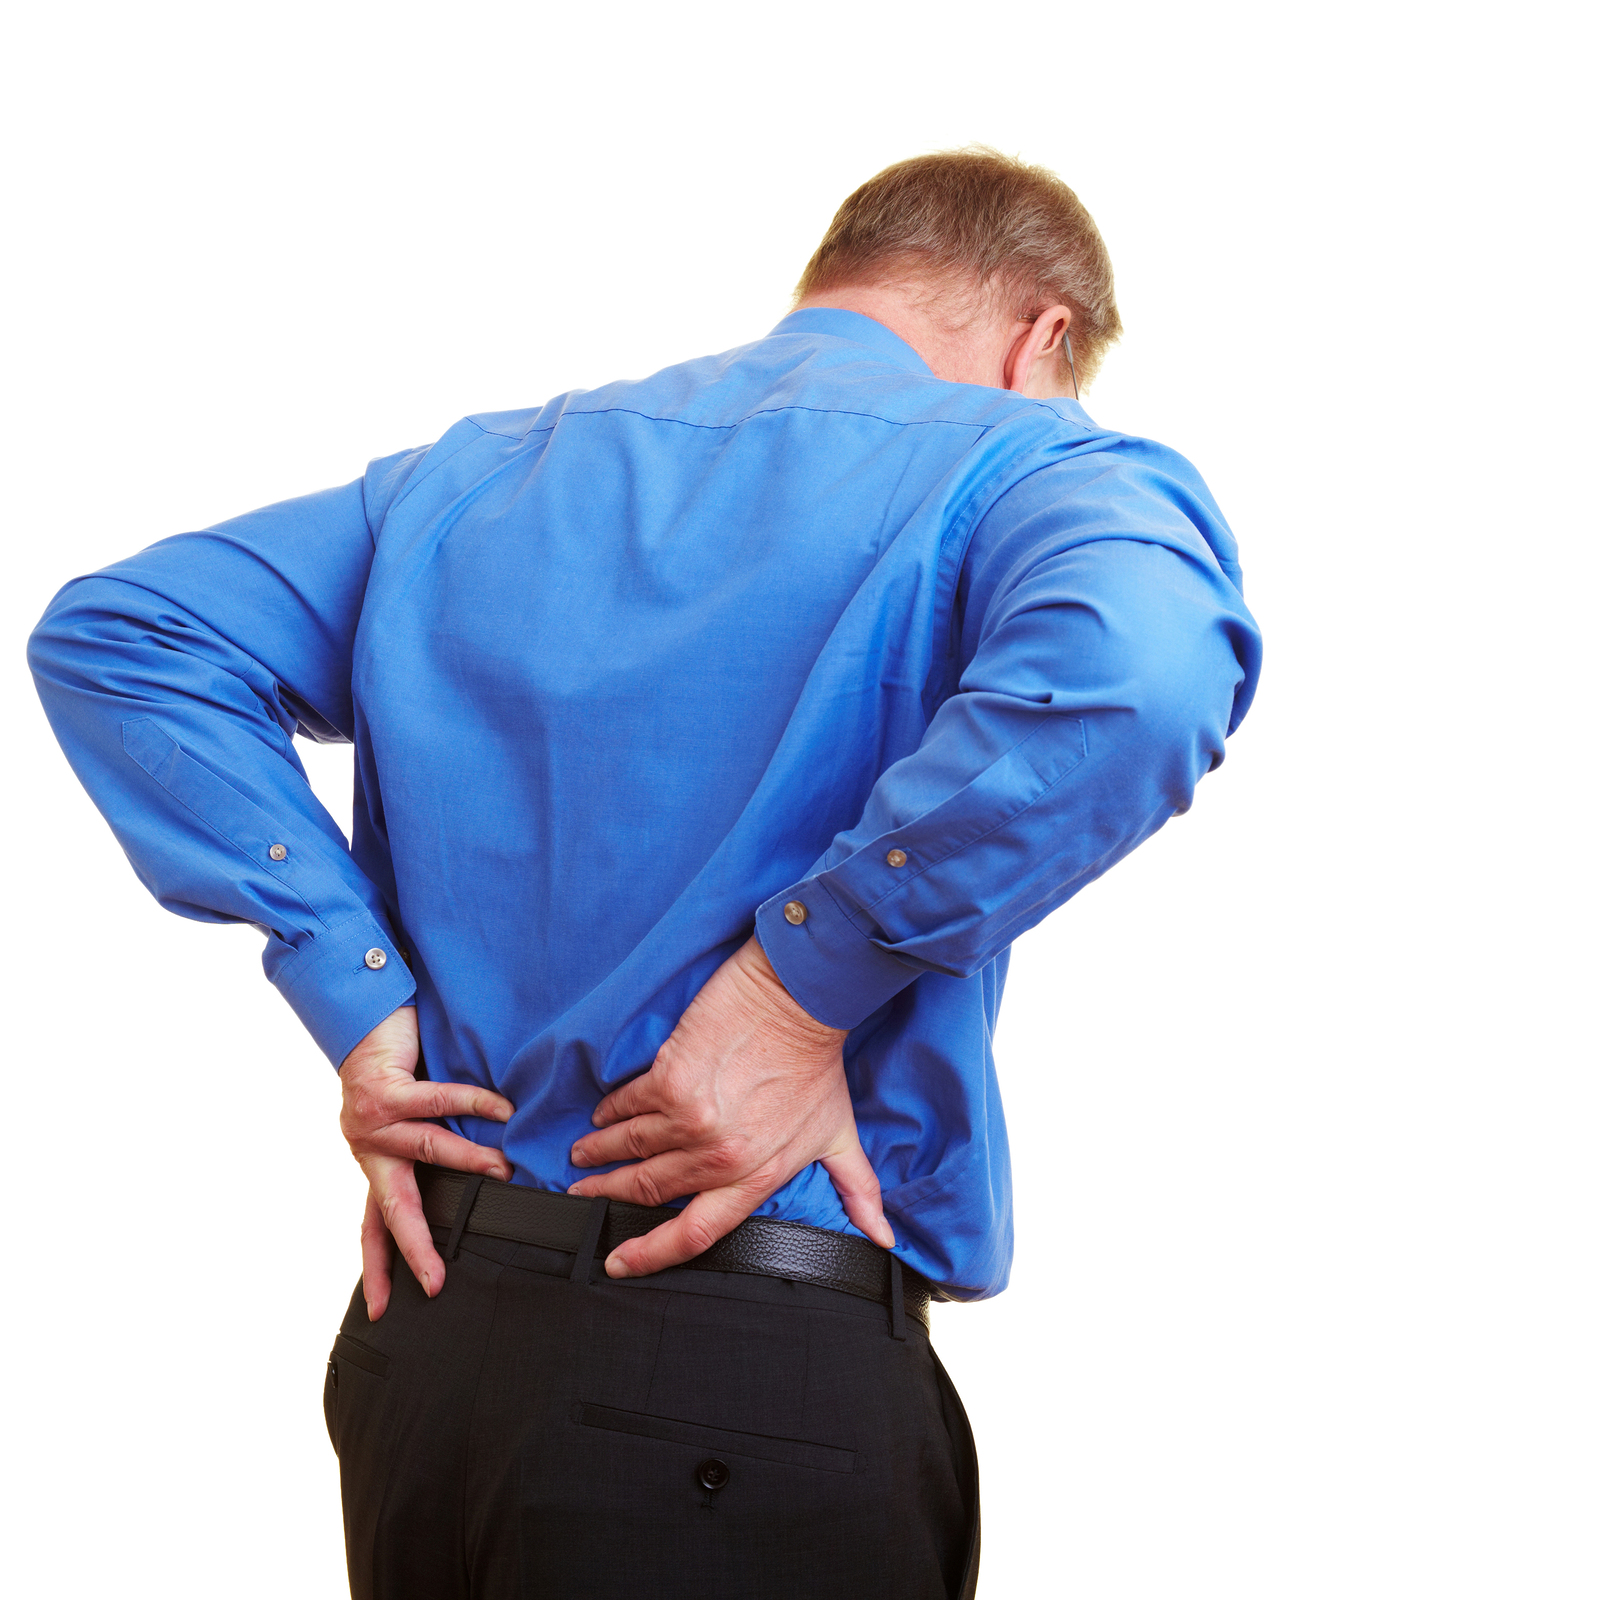 Causes Symptoms Care Sciatica